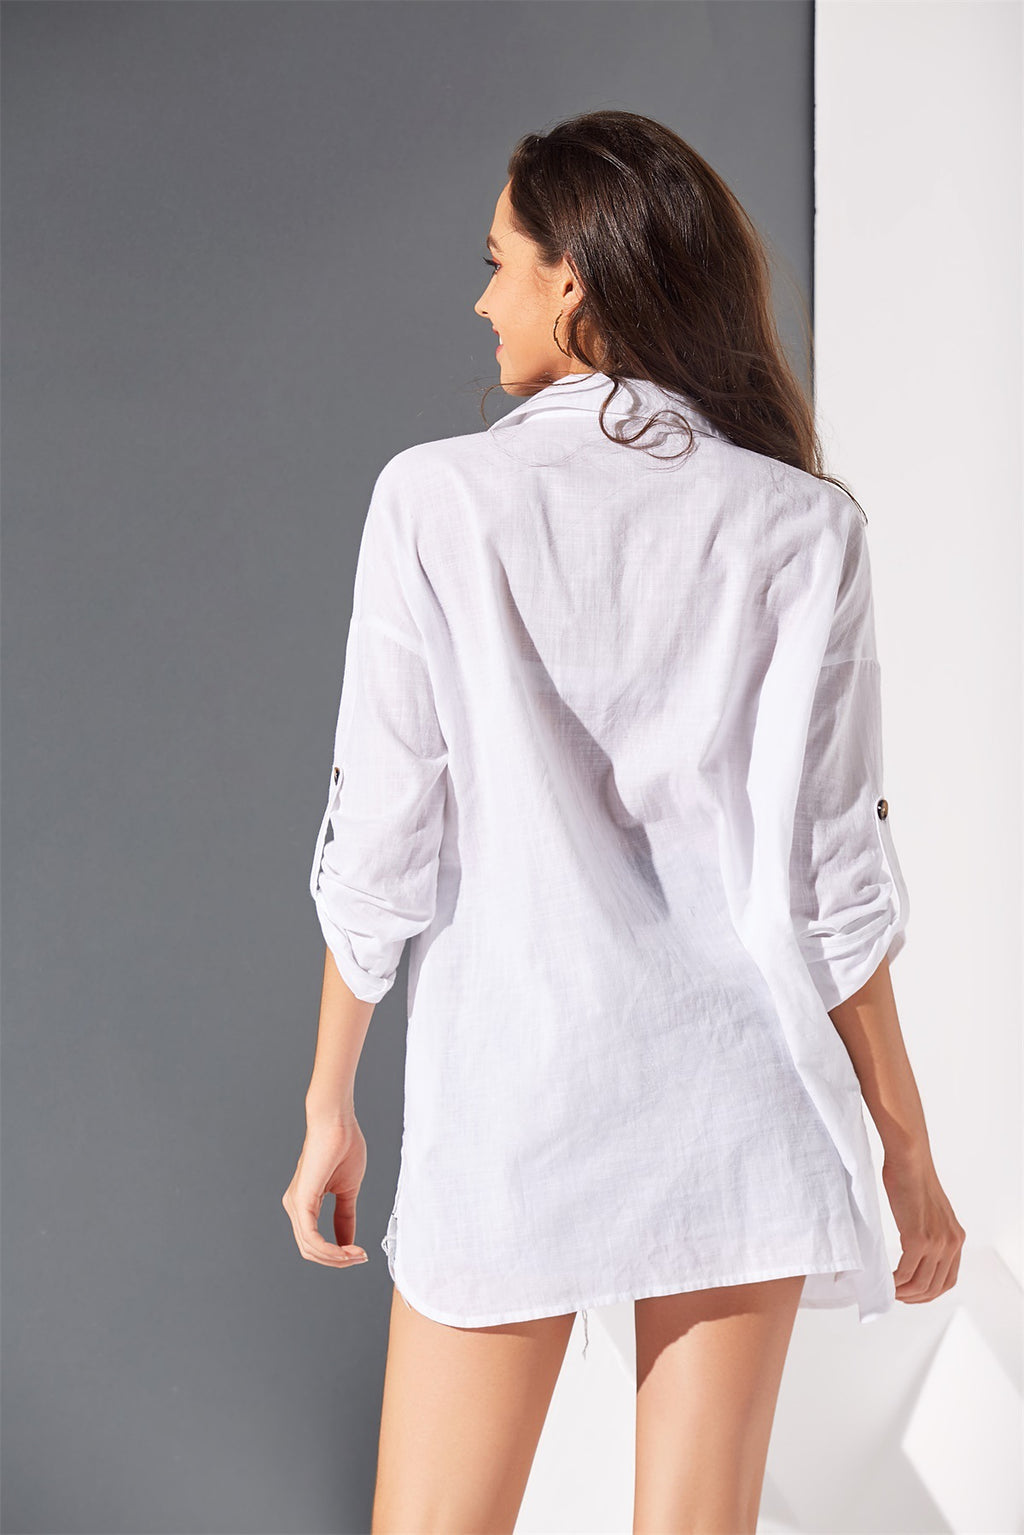 Autumn New Cotton And Linen Shirt Solid Color Dress